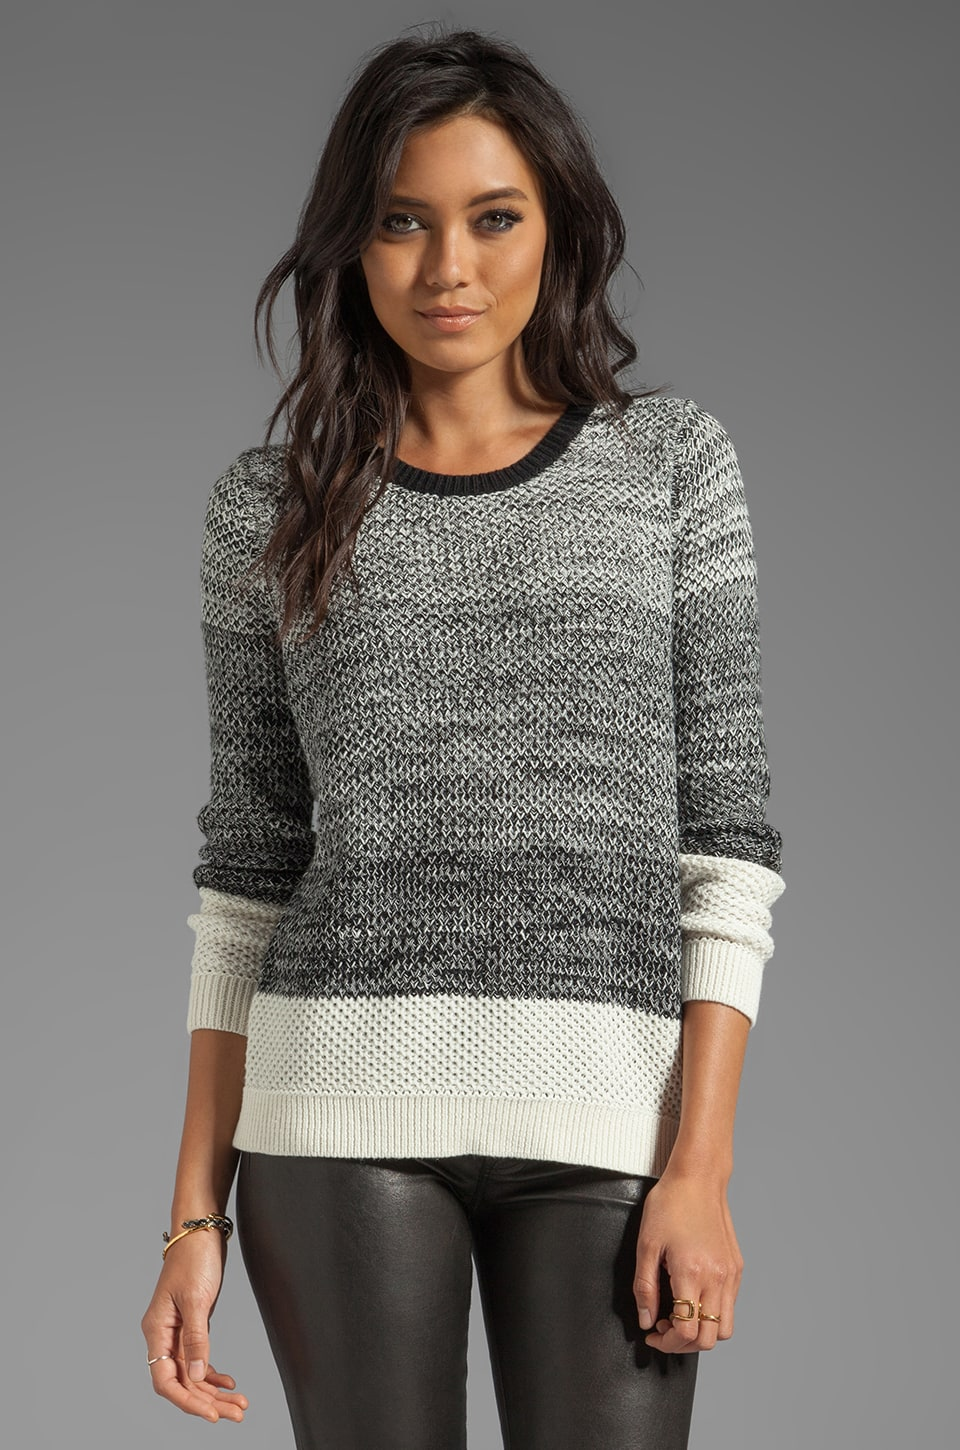 SHAE Moss Stitch Pullover in Black Marl